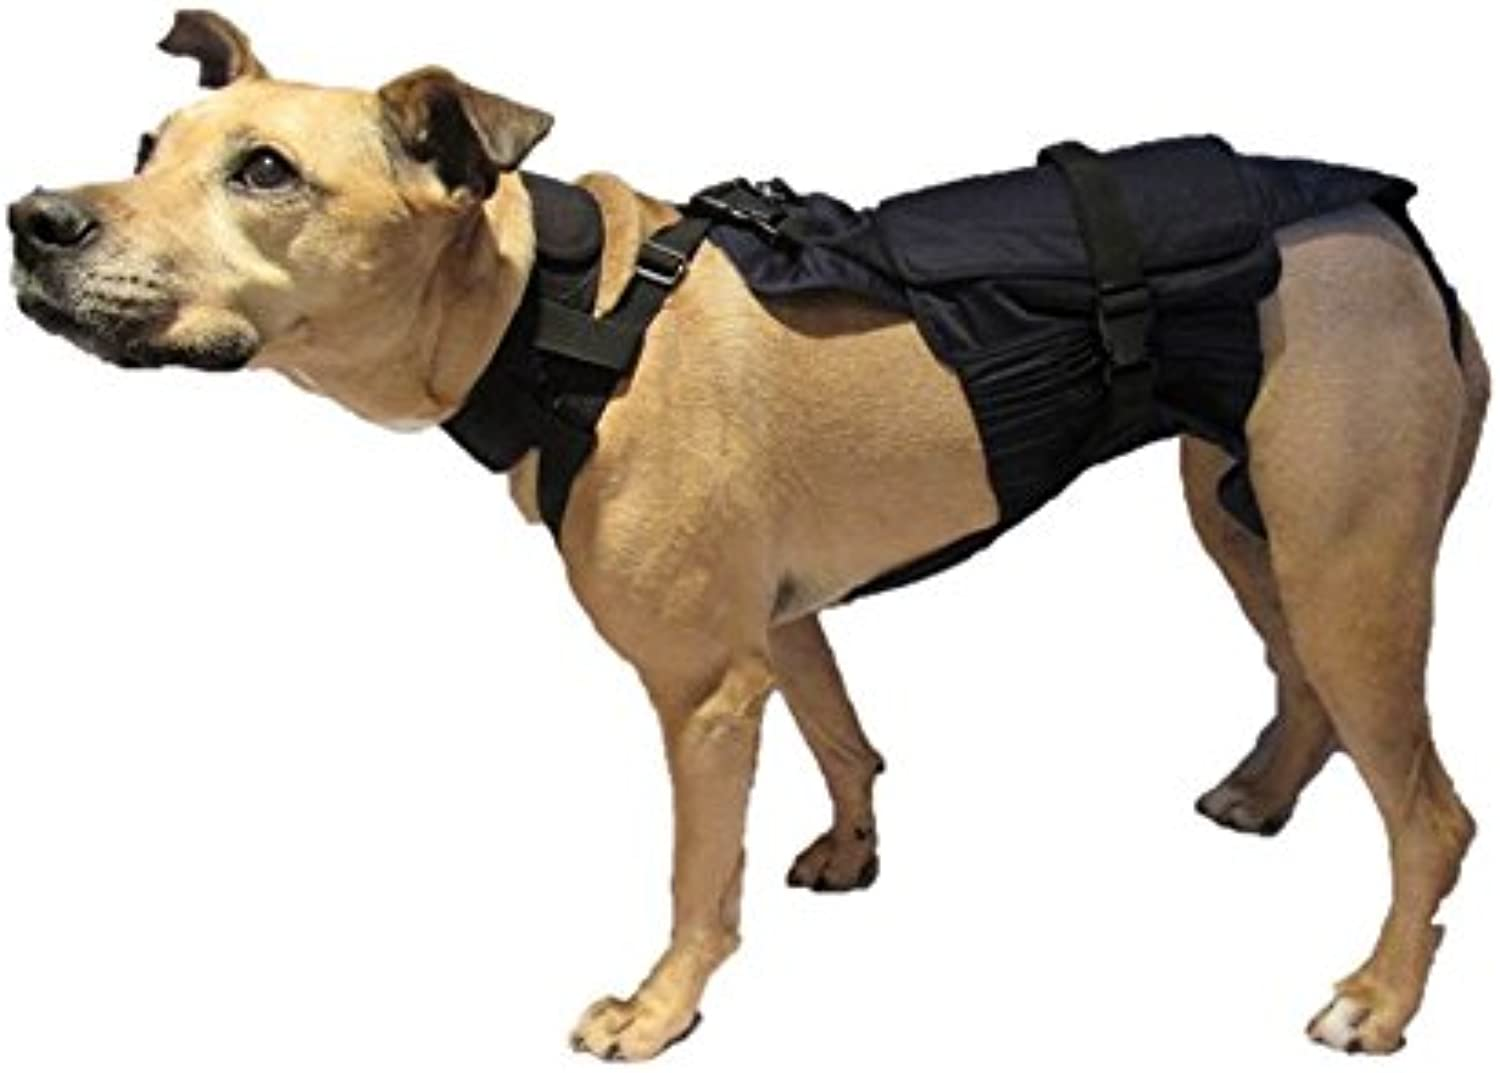 (M)LONG DOG Diaper Wrap 30 Pounds to 40 Pounds or 17 Inches to 19 Inches in Length (blueE)